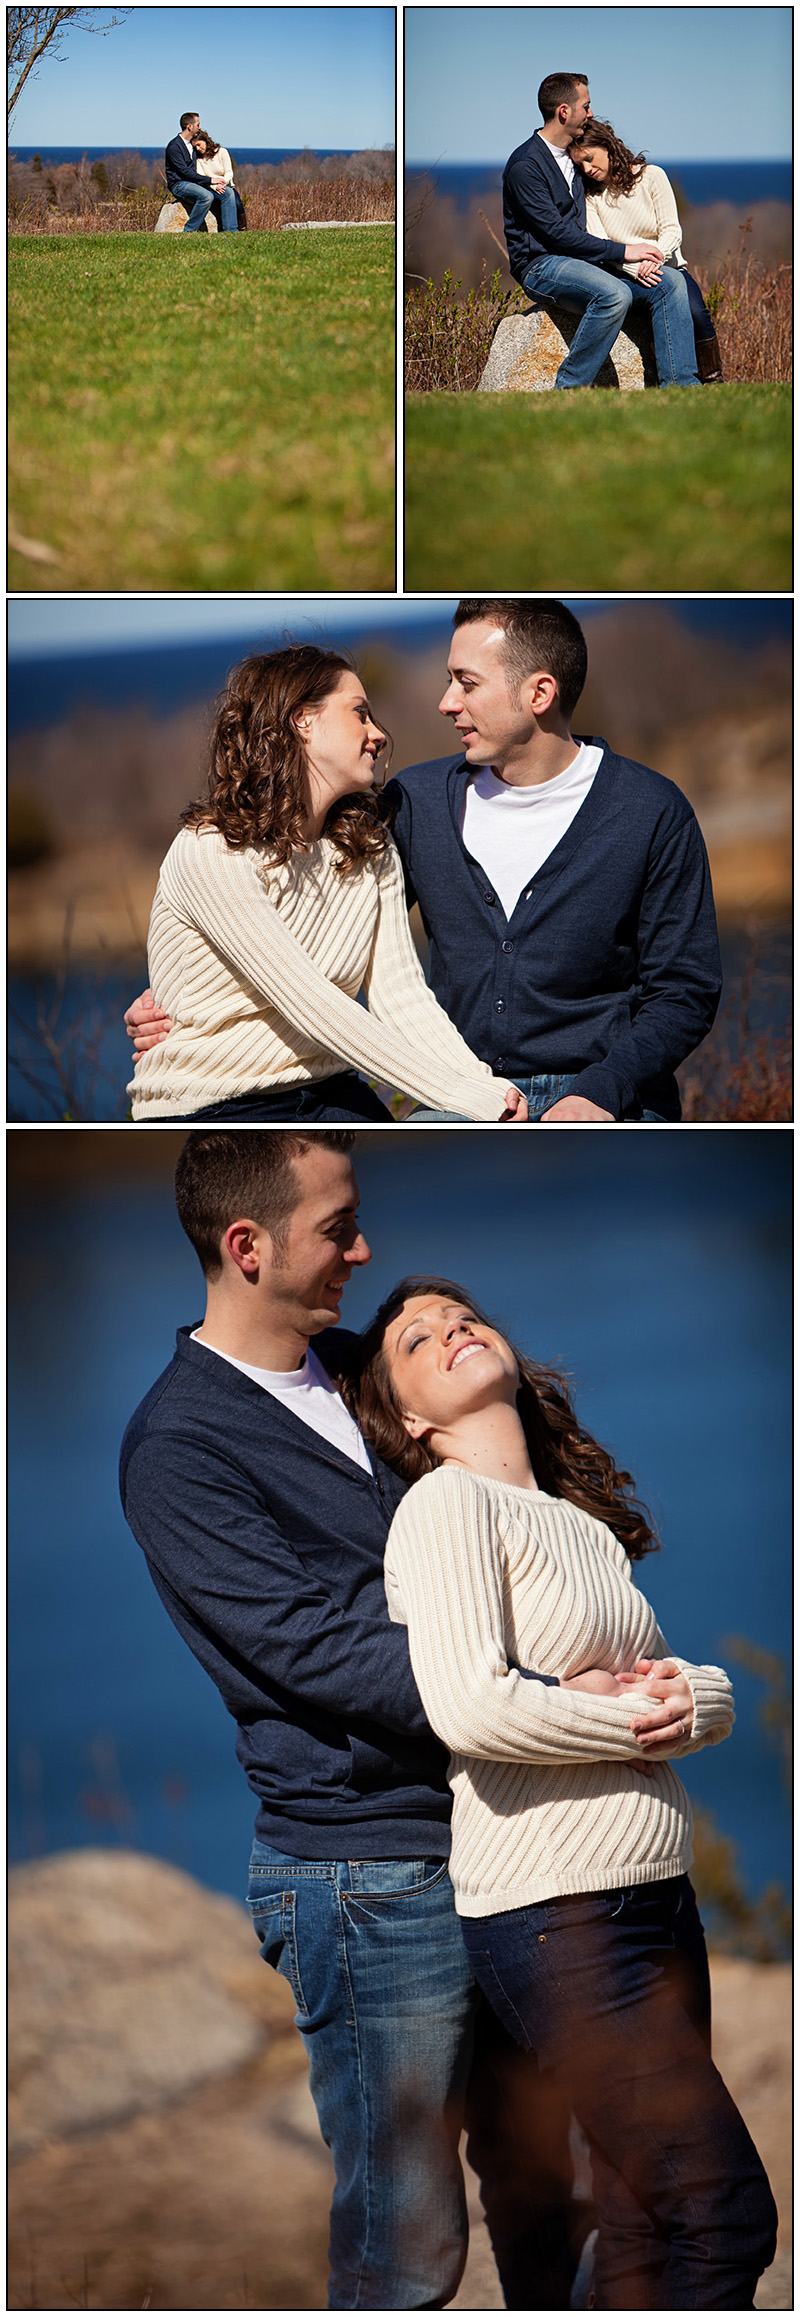 WEDDING AND ENGAGEMENT PHOTOGRAPHER ROCKPORT MA